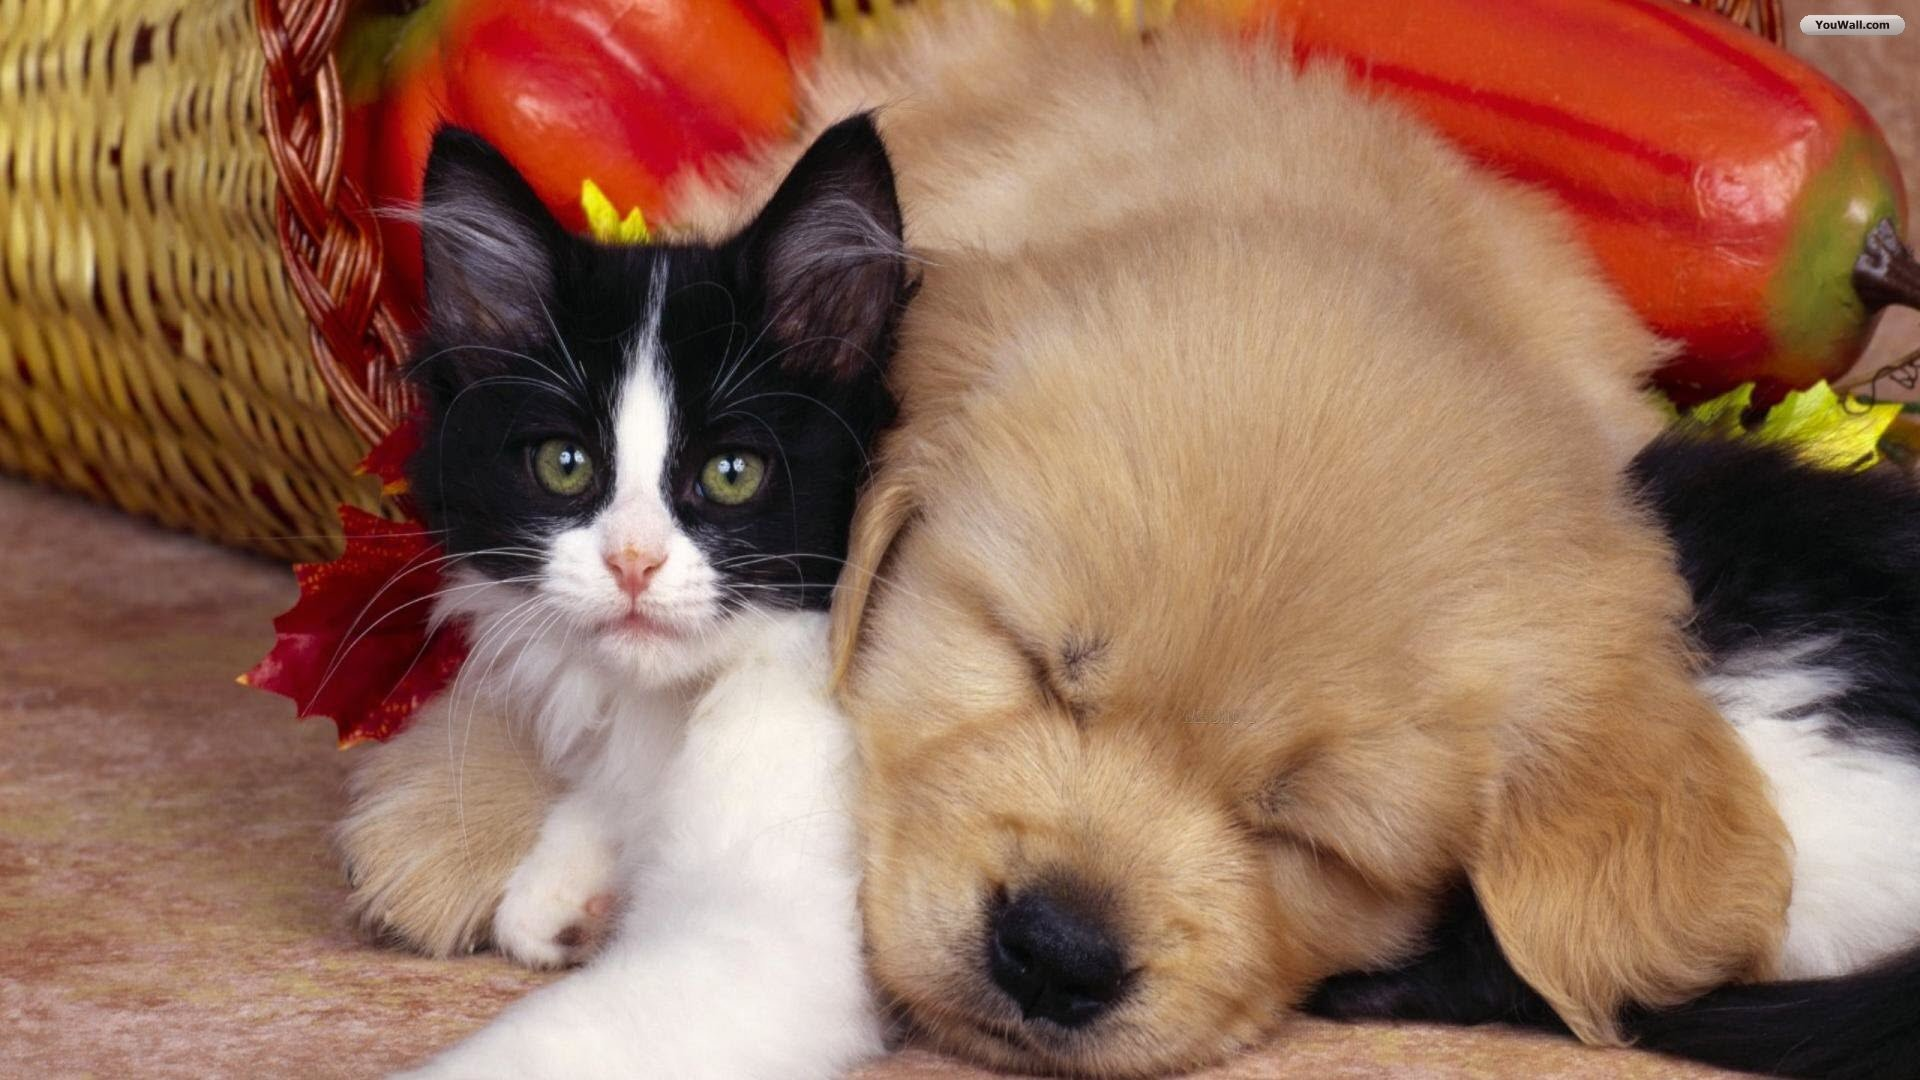 Dog And Cat Wallpaper